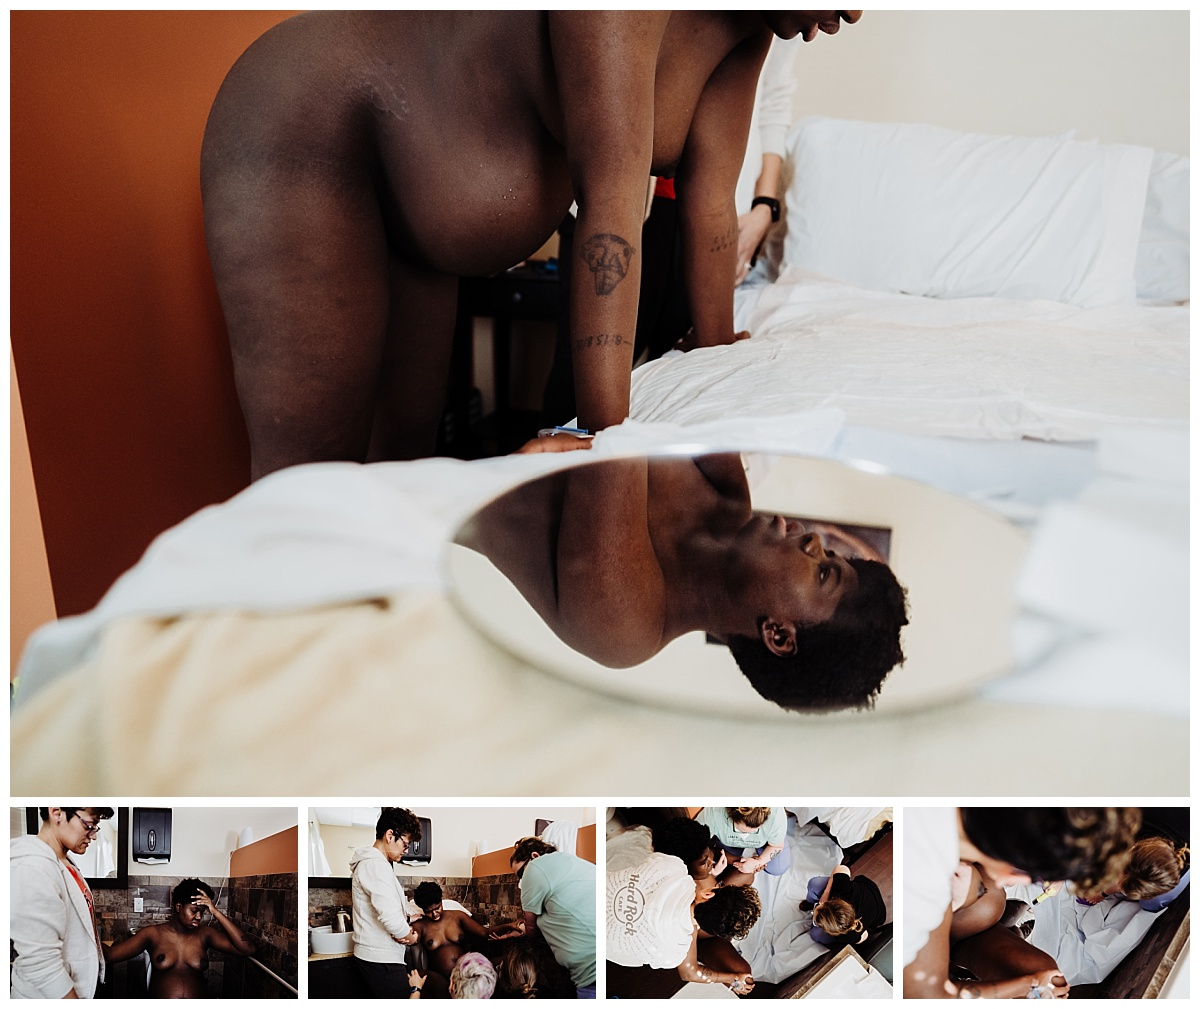 a series of collage images of the birthing person leaning over the bed, her face visible in a circular mirror placed at the foot of the bed, her partner and nurse supporting her while she labors on the tub and the pushing on the birth stool